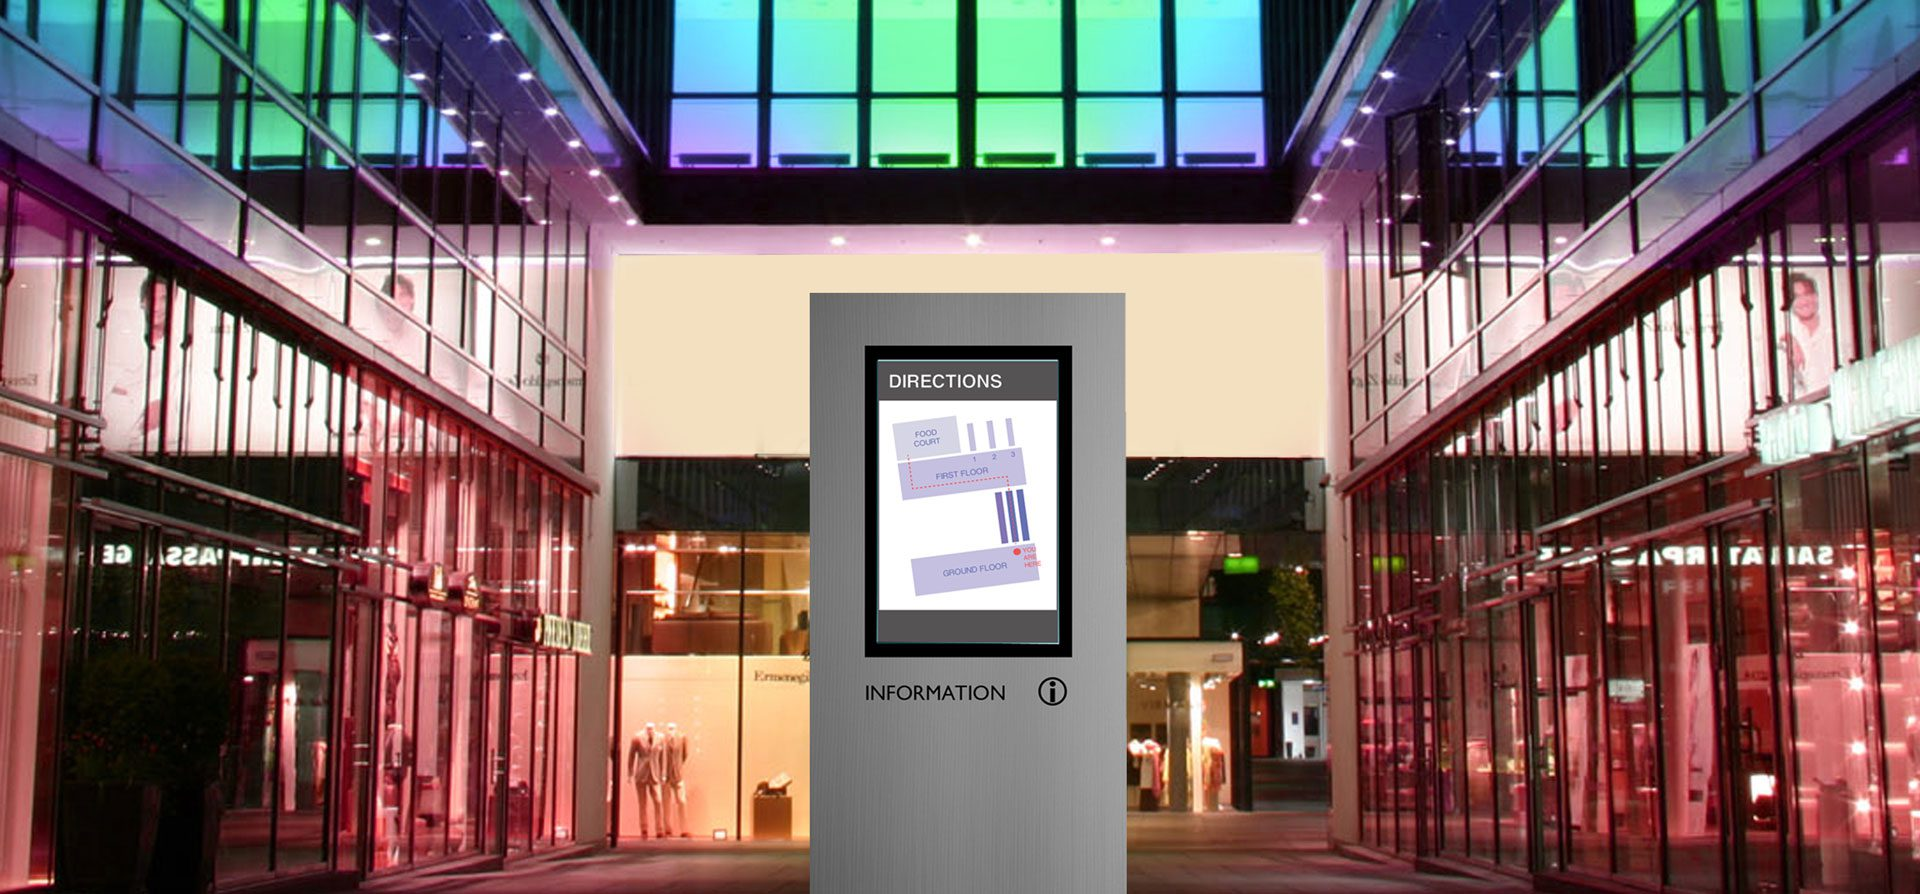 Retail-lcd-digital-displays-shopping-centre